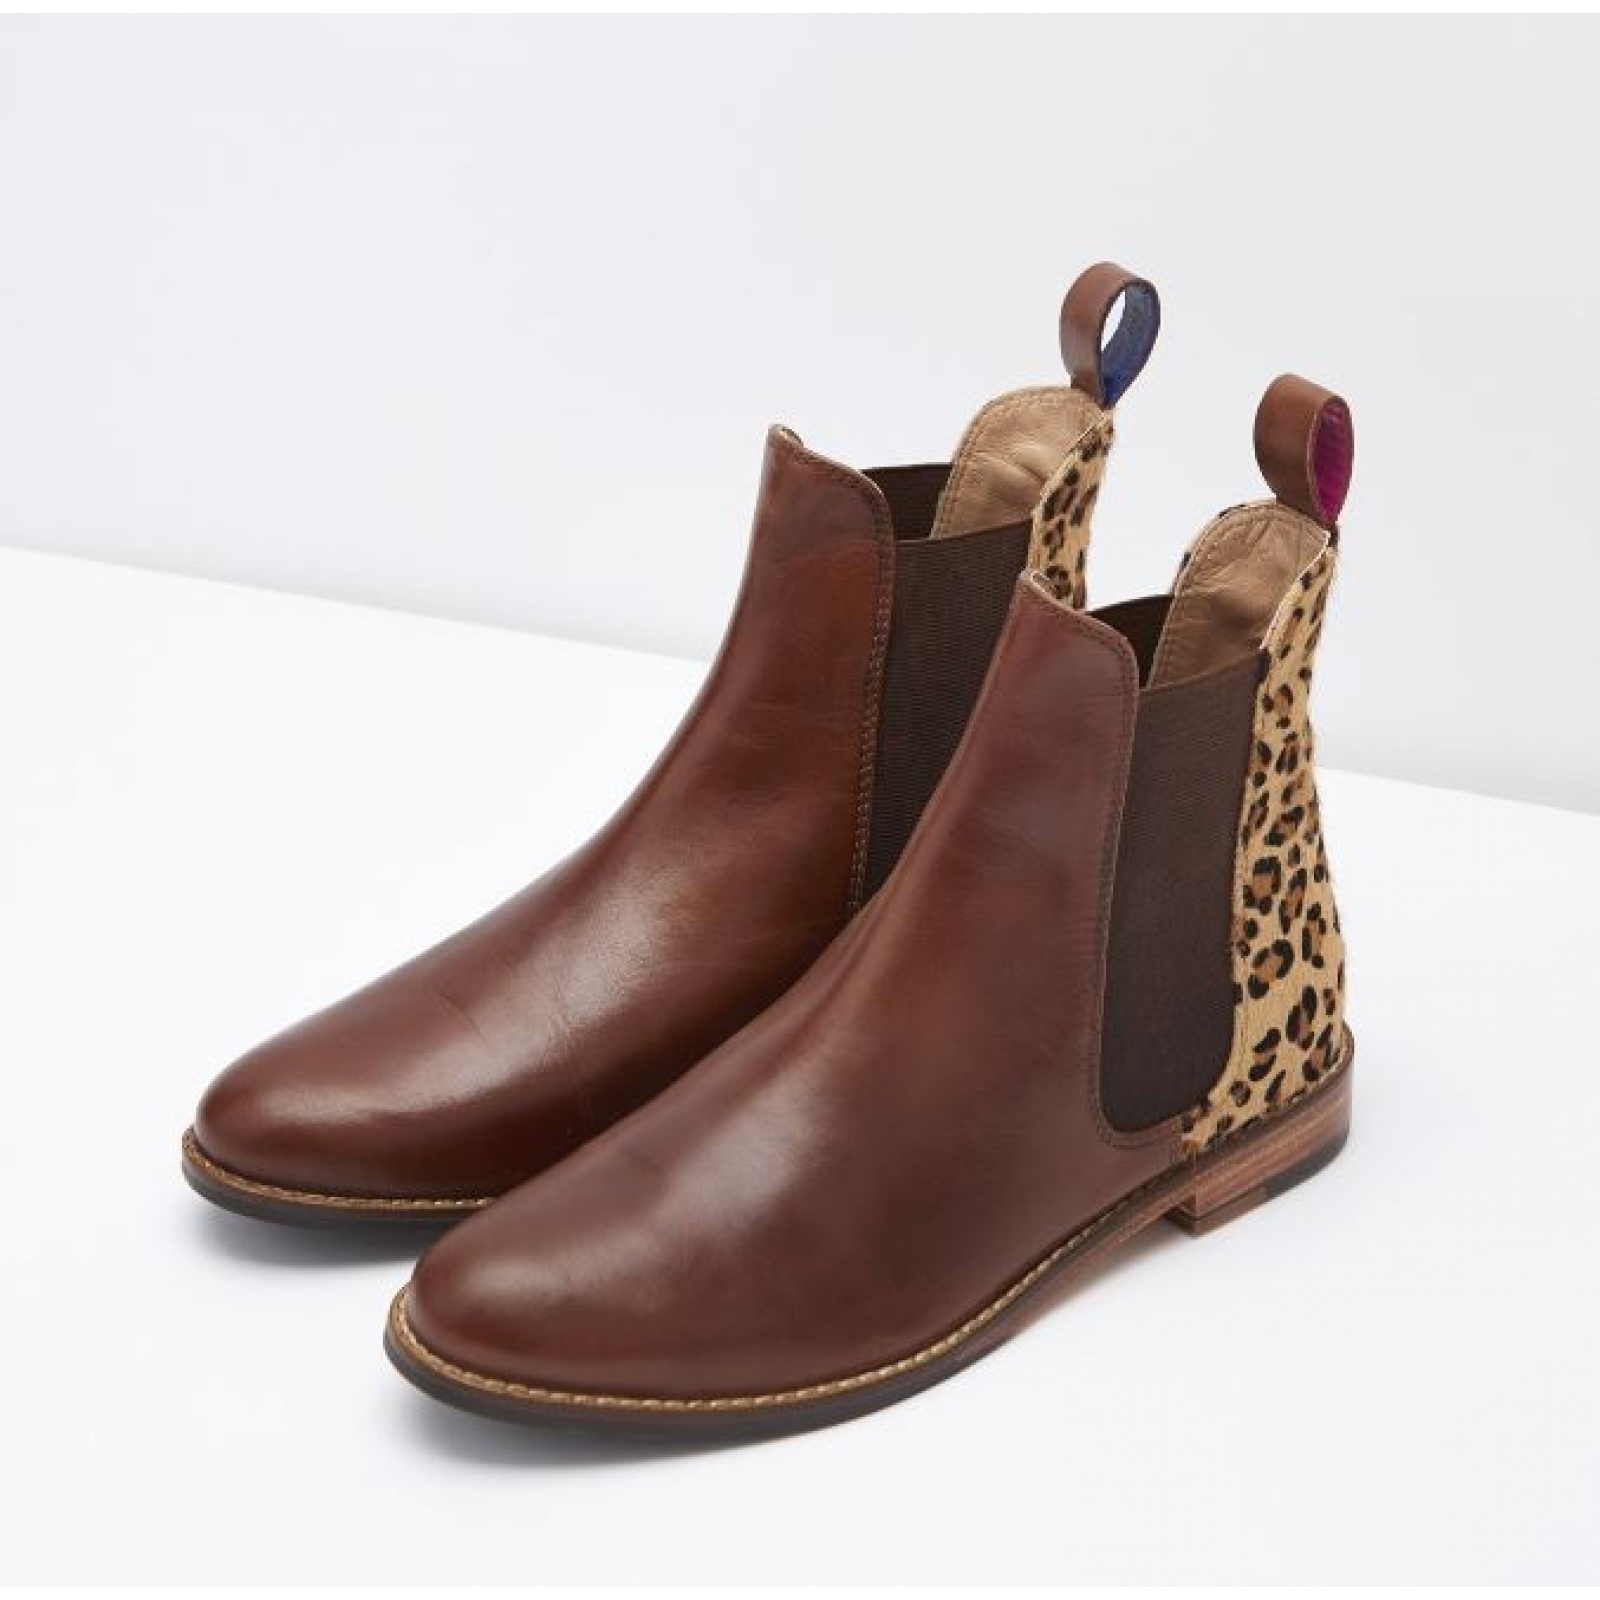 Joules-Westbourne-Premium-Leather-Chelsea-Boot-ALL-COLOURS miniature 10